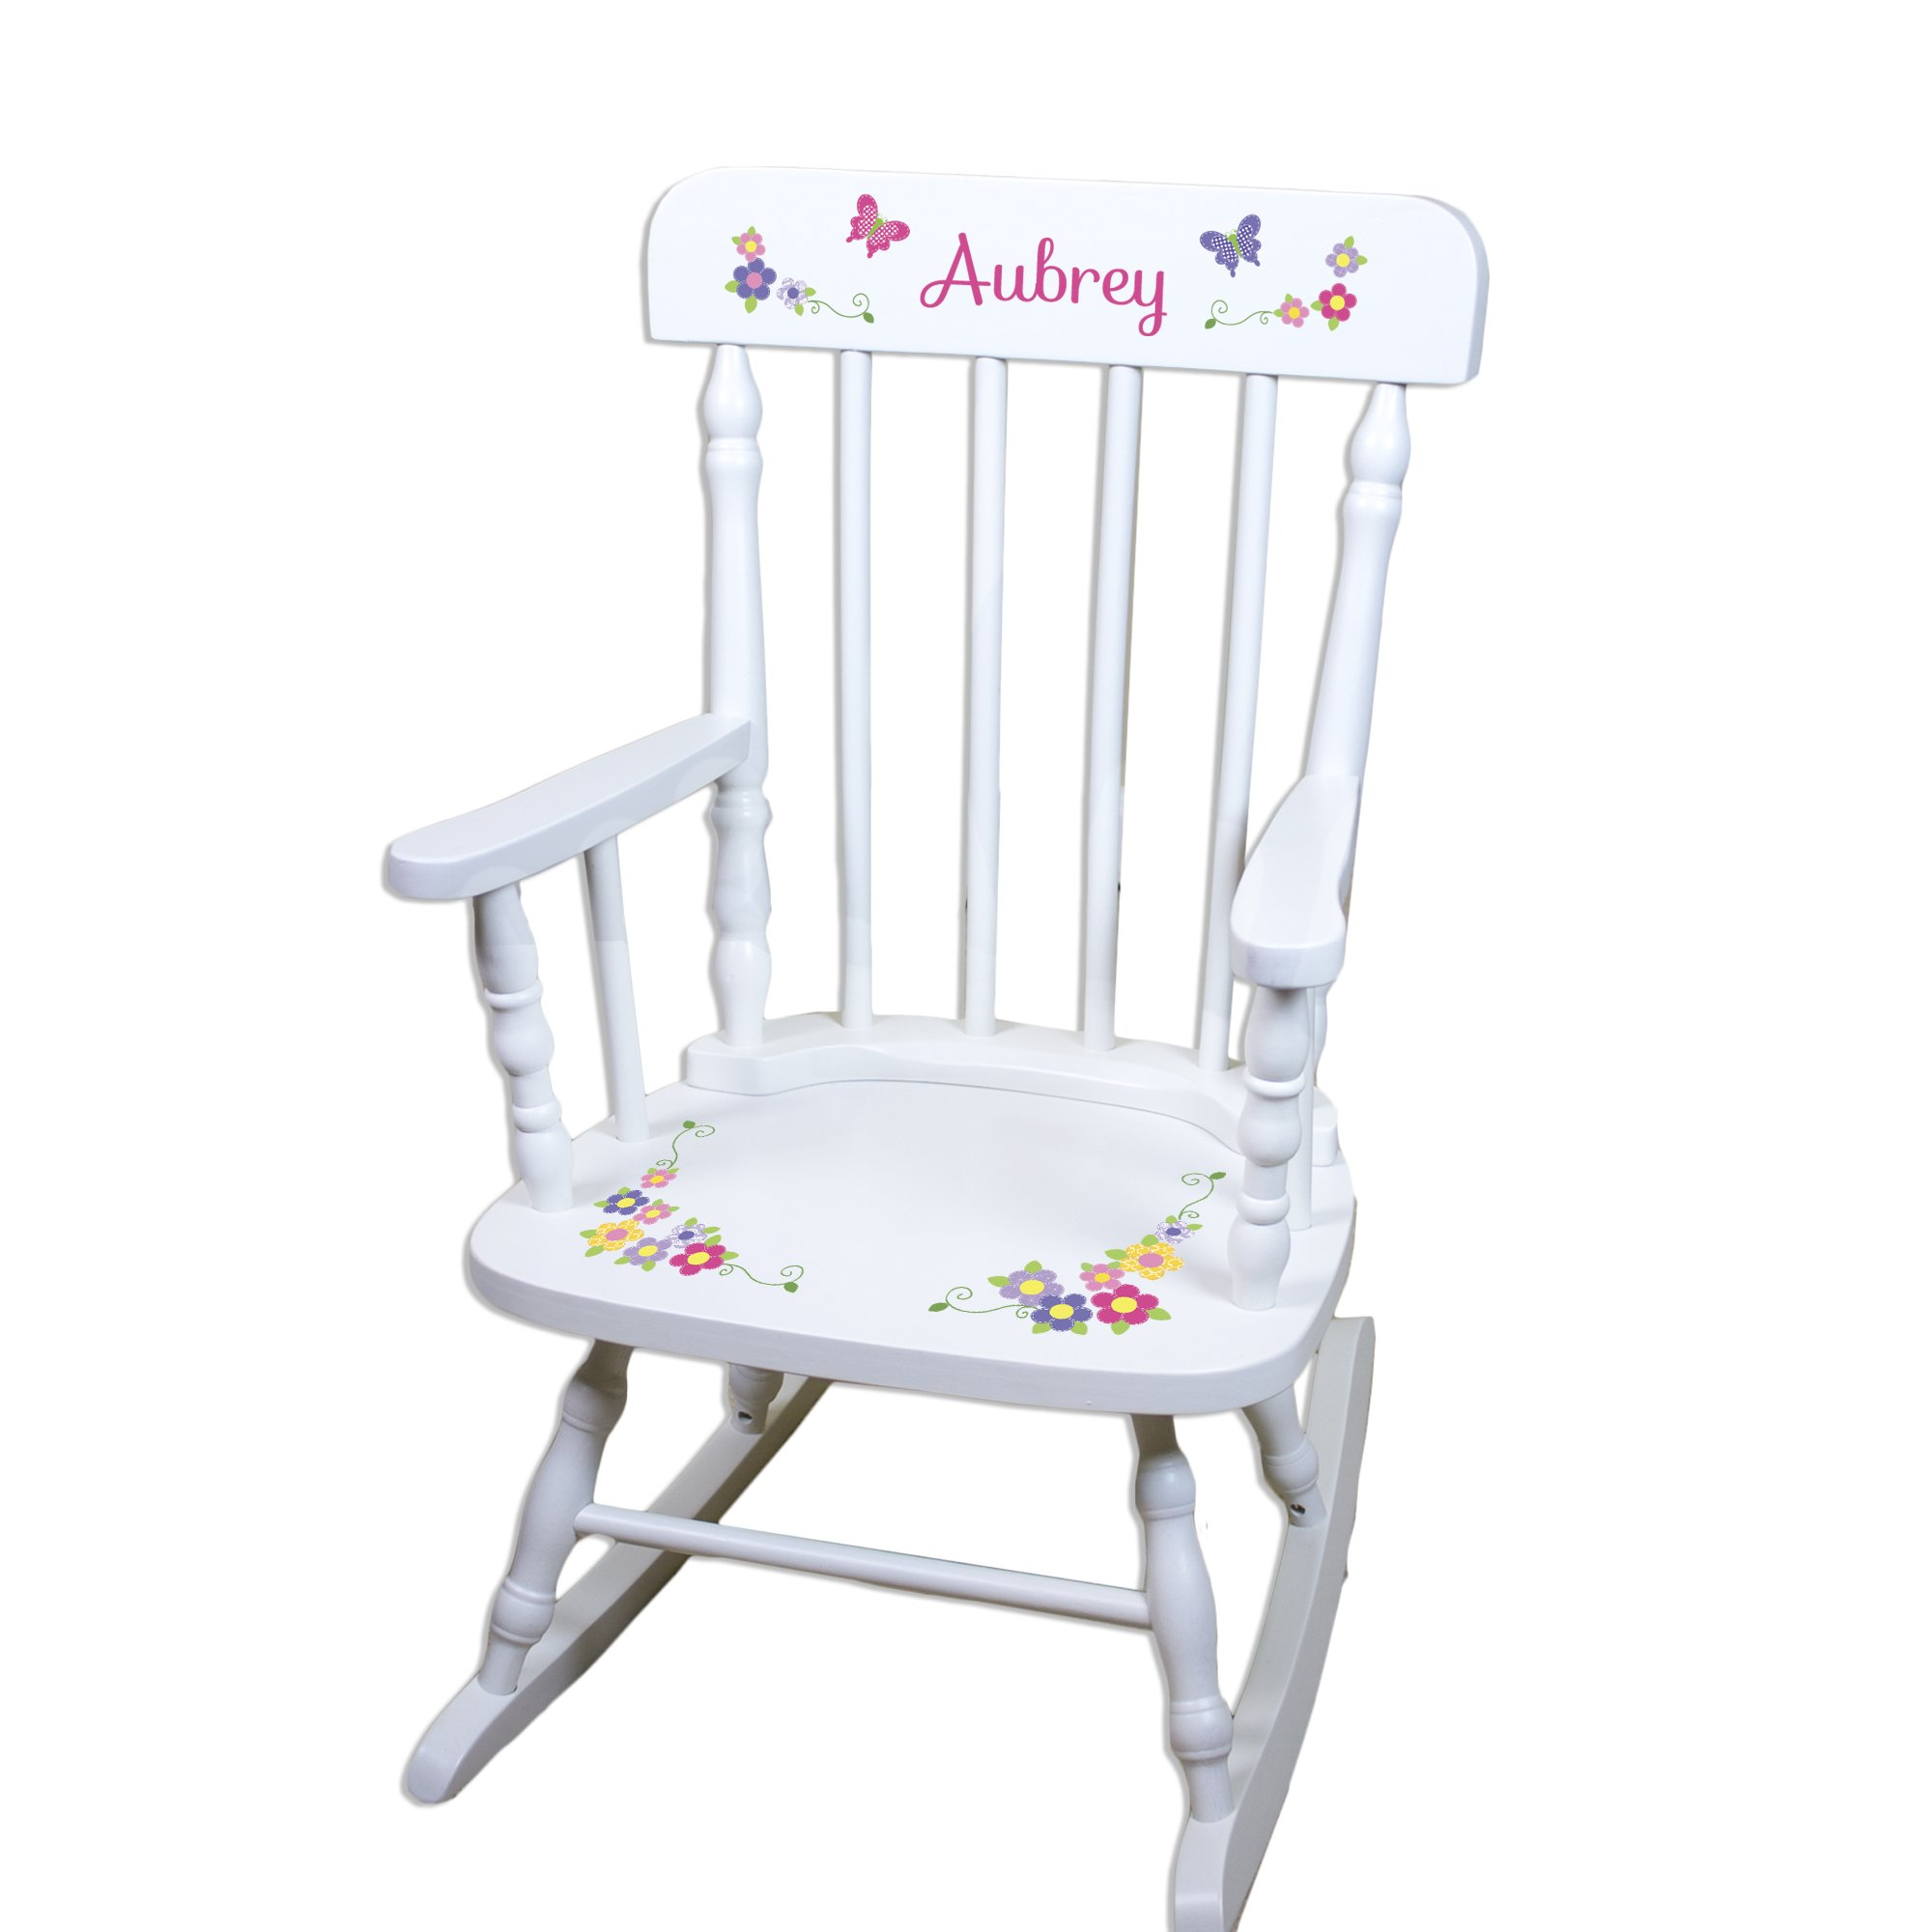 Children's Personalized White Bright Butterfly Rocking Chair by MyBambino